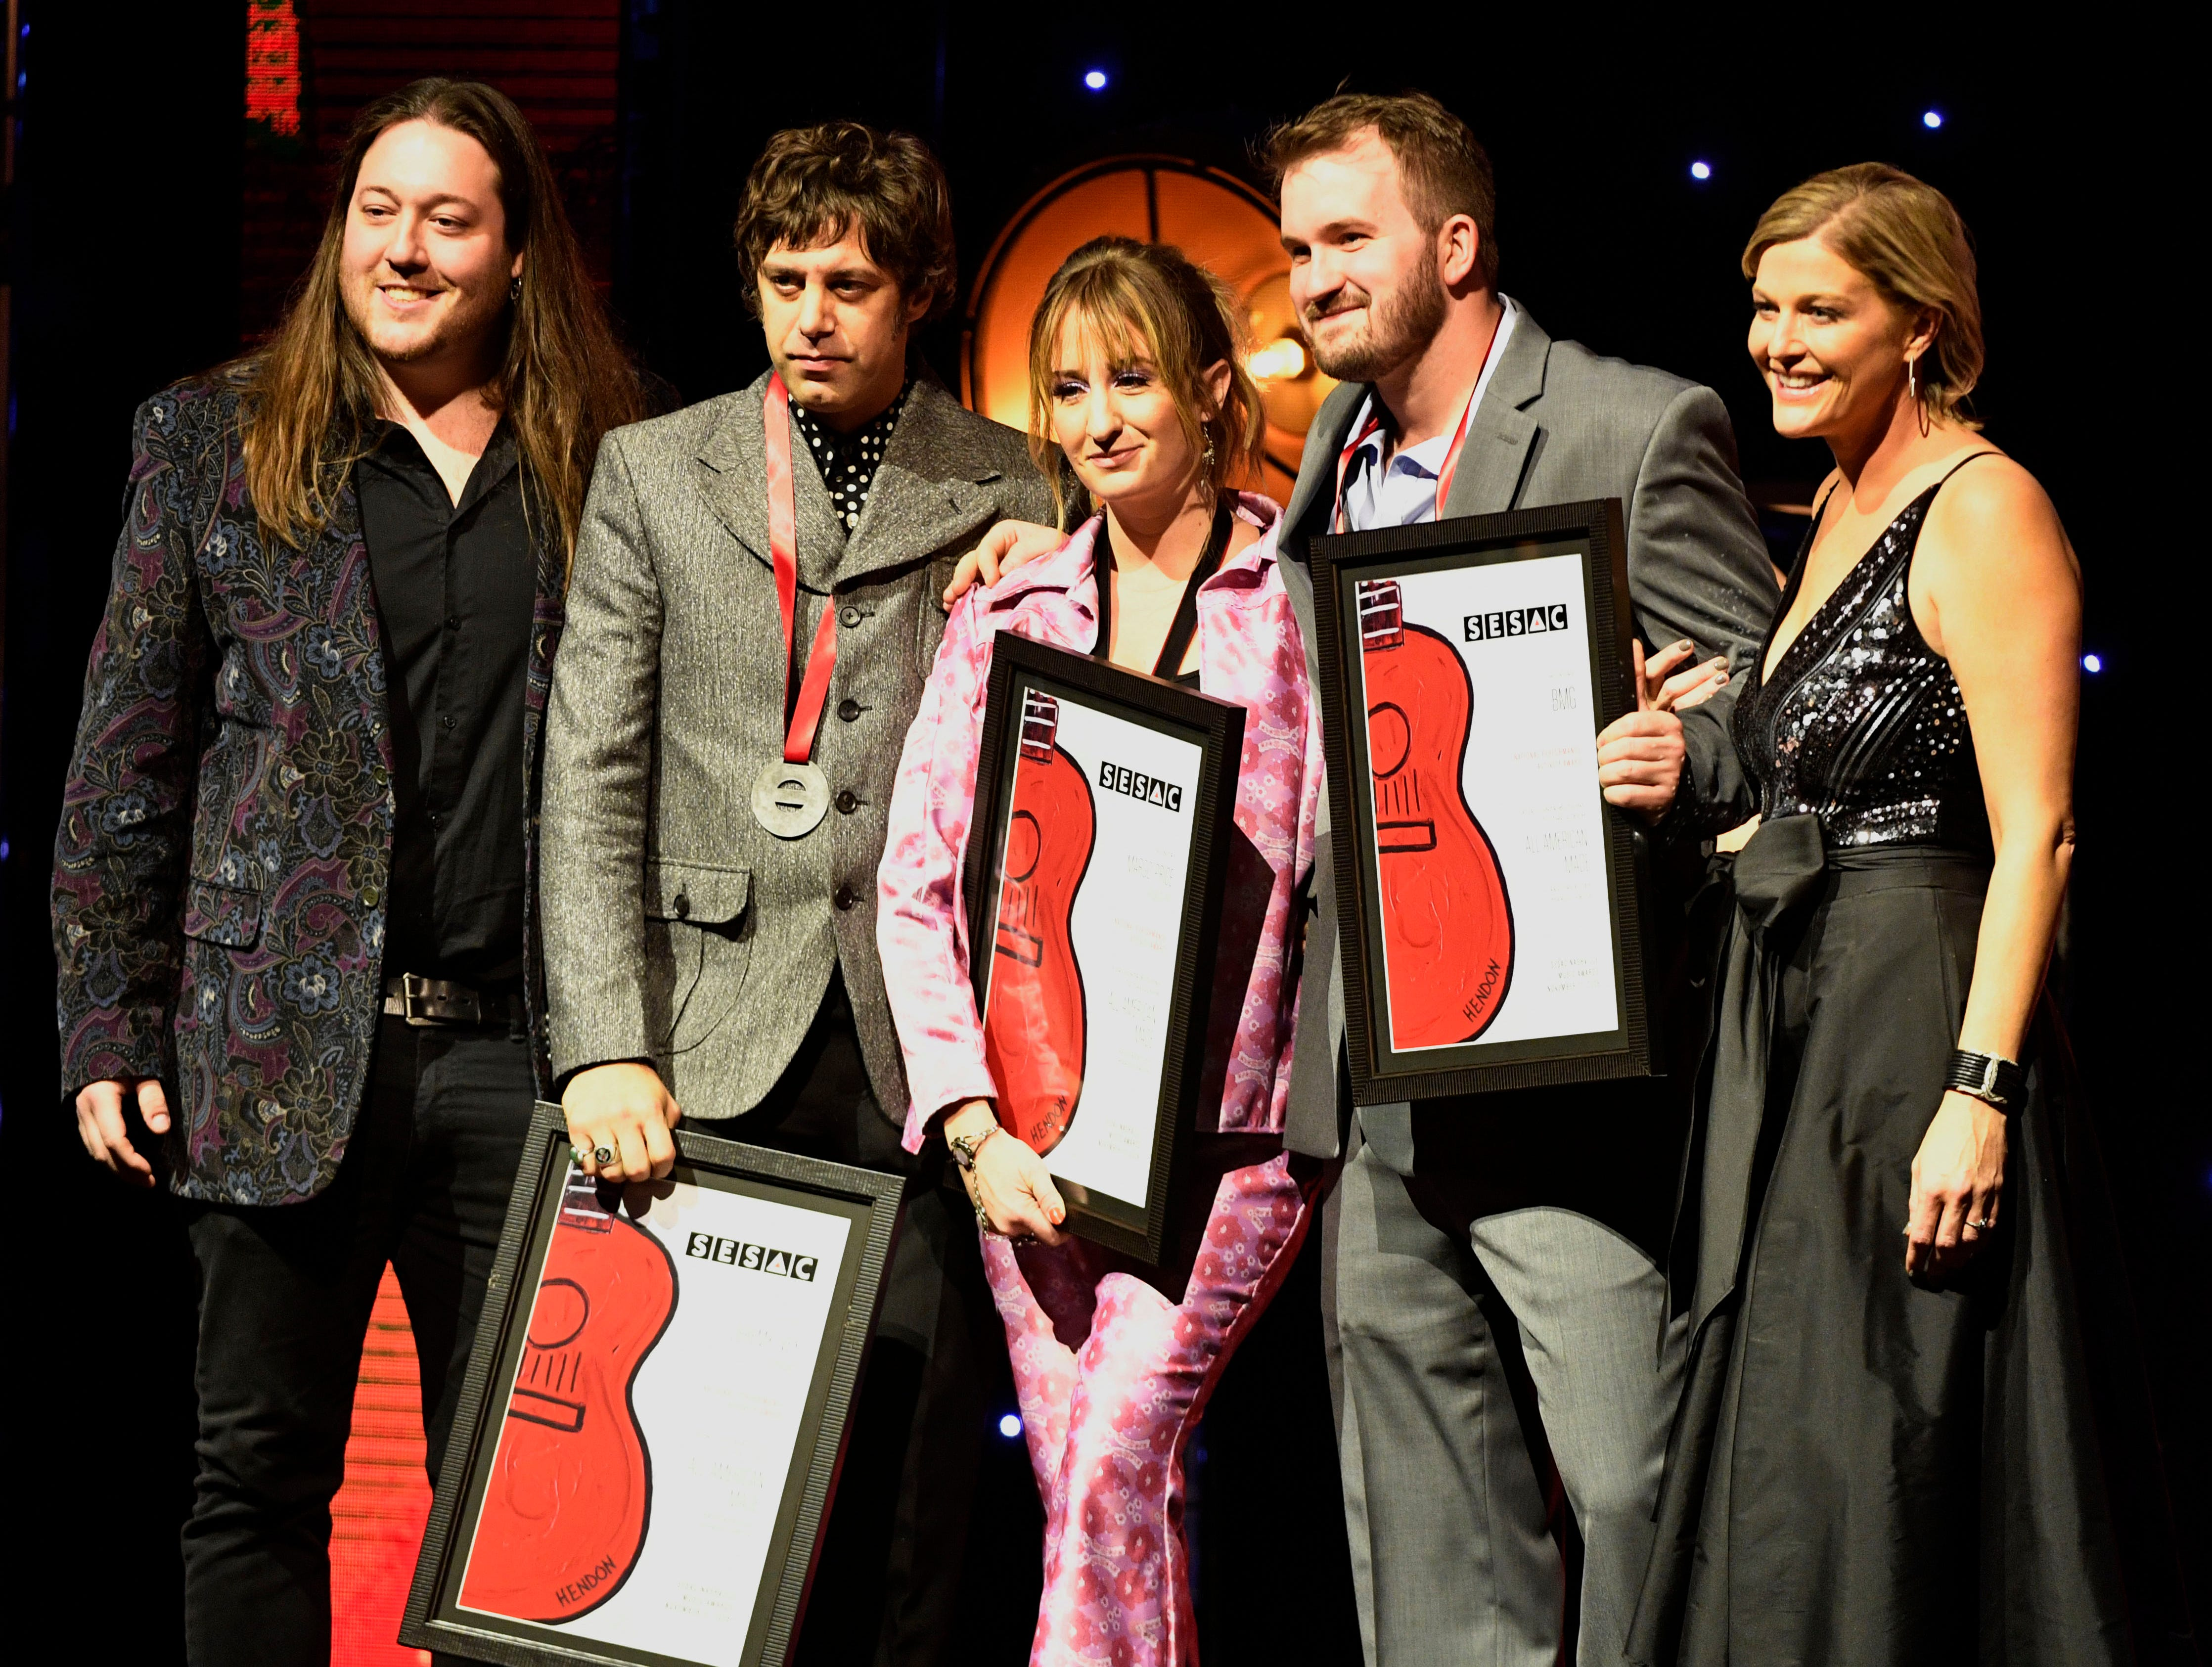 ALL AMERICAN MADEcontributions by:Margo Price, Jeremy Iveypublished by: BMG, Peach Pit, Fisheyerecorded by:Margo Price at the SESAC Nashville Music Awards at the Country Music Hall of Fame and Museum Sunday Nov. 11, 2018, in Nashville, Tenn.